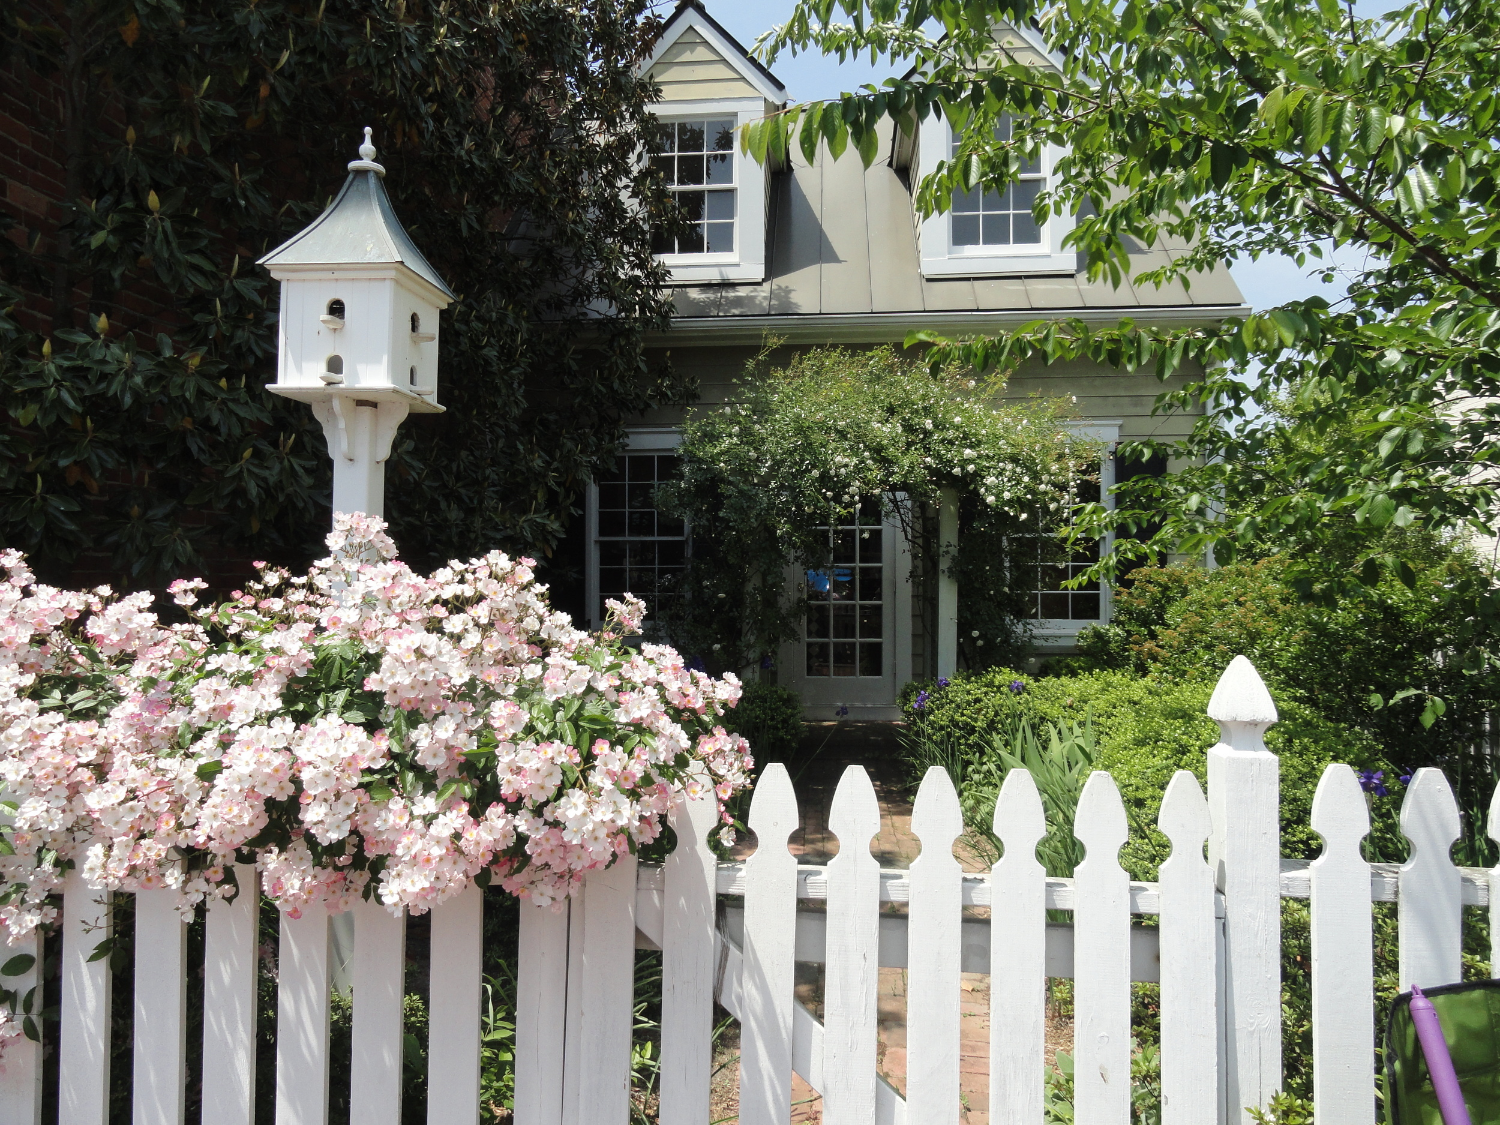 historic-Smithfield-Virginia-home-with-spring-flowers